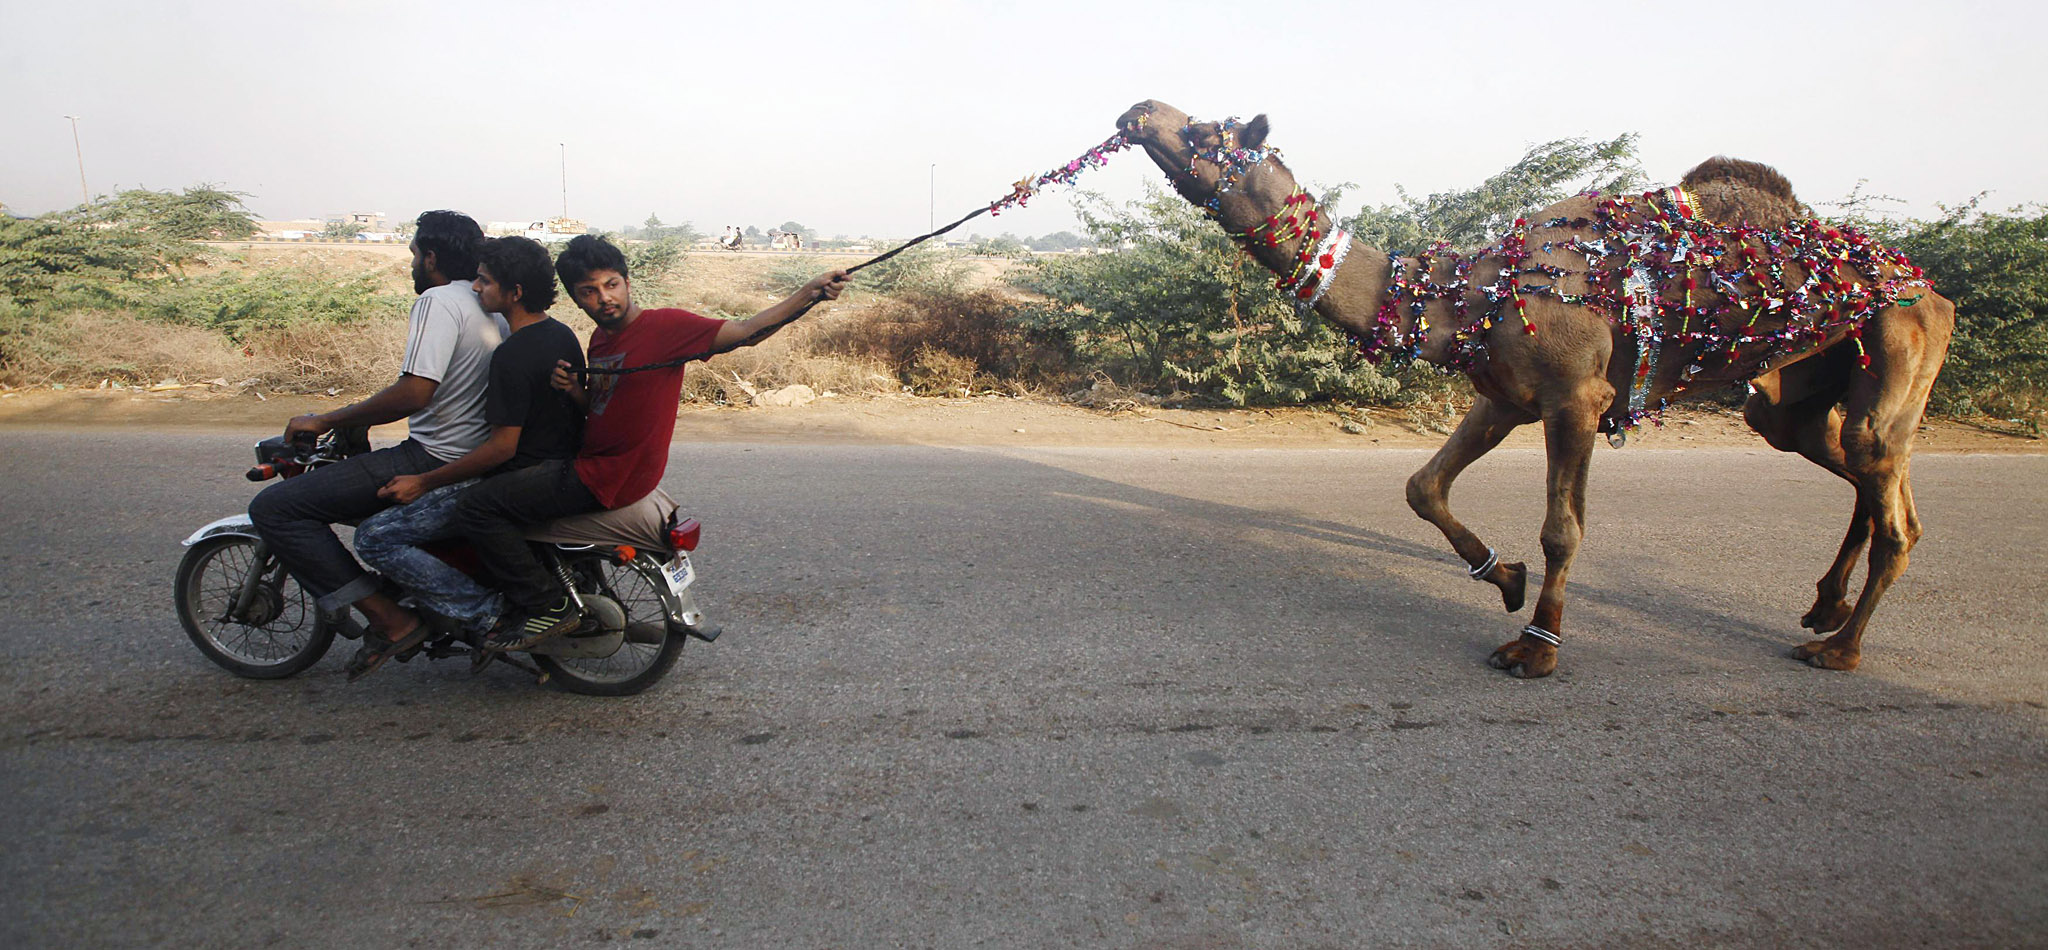 Men ride on a motorcycle while leading a recently purchased camel ahead of Eid al-Adha celebrations on the outskirts of Karachi October 15, 2013. Muslims across the world celebrate the annual festival of Eid al-Adha or the Festival of Sacrifice, which marks the end of the annual hajj pilgrimage, by slaughtering goats, sheep, cows and camels in commemoration of the Prophet Abraham's readiness to sacrifice his son to show obedience to Allah. Eid al-Adha in Pakistan falls on October 16. REUTERS/Athar Hussain